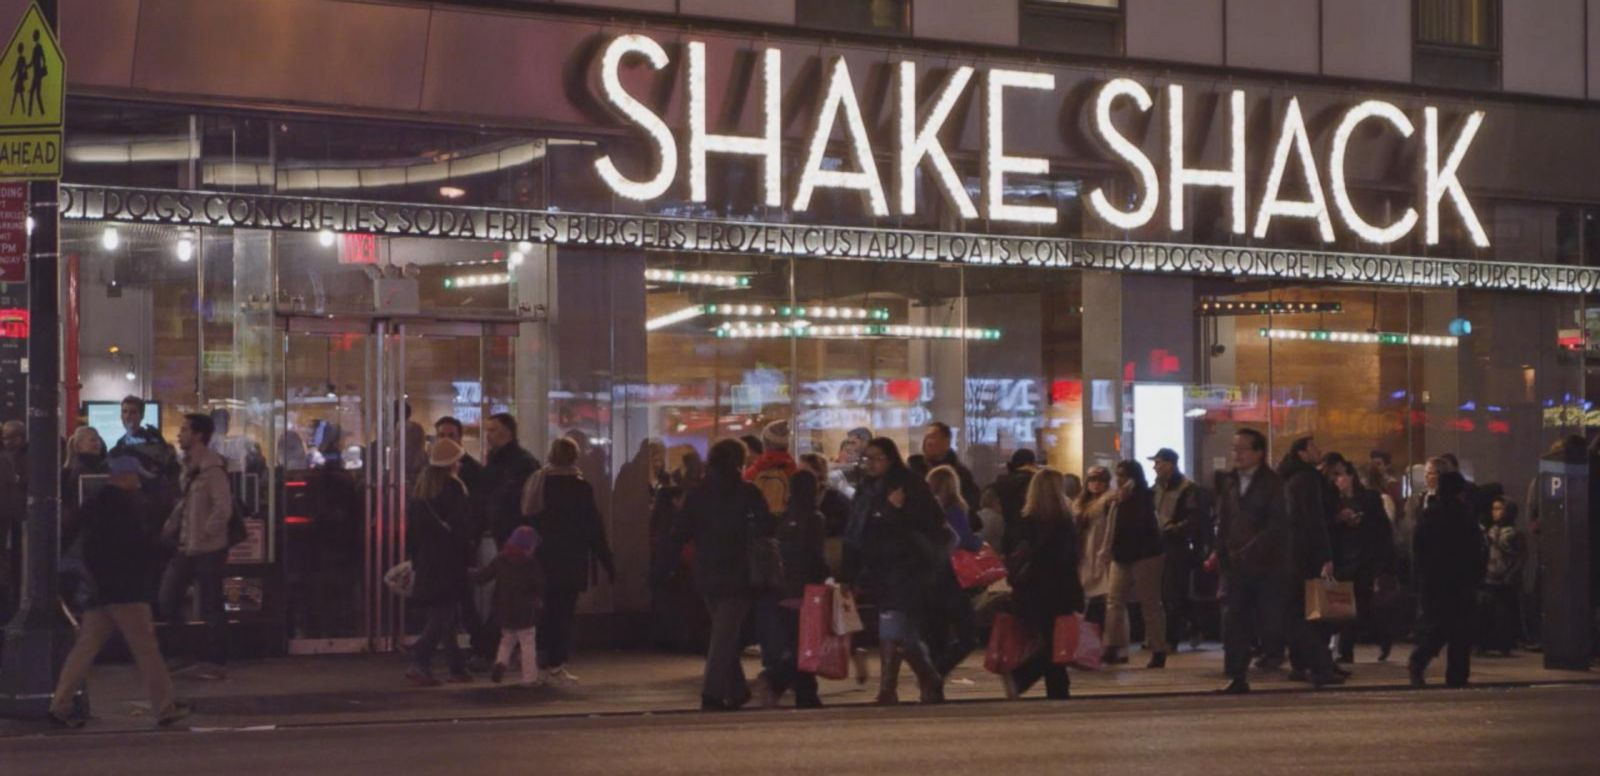 VIDEO: Shake Shack Soars on Wall Street Debut